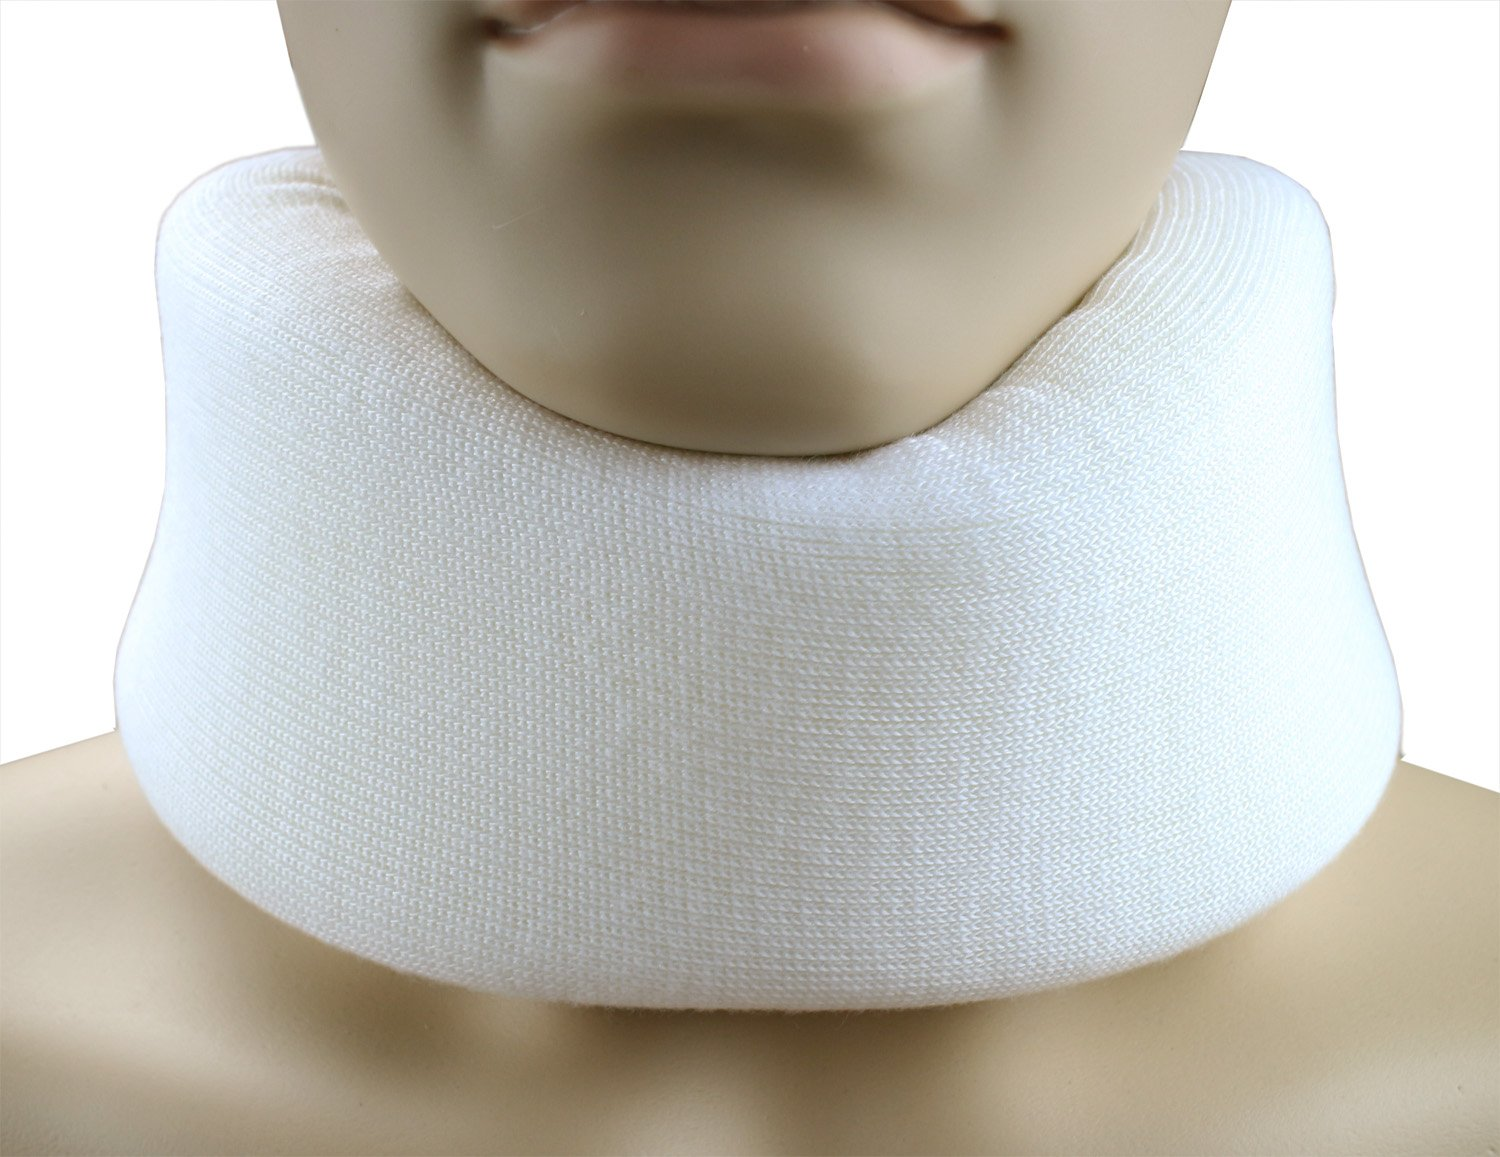 ObboMed® MB-4803N 2.5 Inch Cozy& Soft Foam Cervical Collar- Relief Neck Rest Support Brace- Wraps Aligns & Stabilizes Vertebrae (XL: 21 x 2.5 x 1 inches)